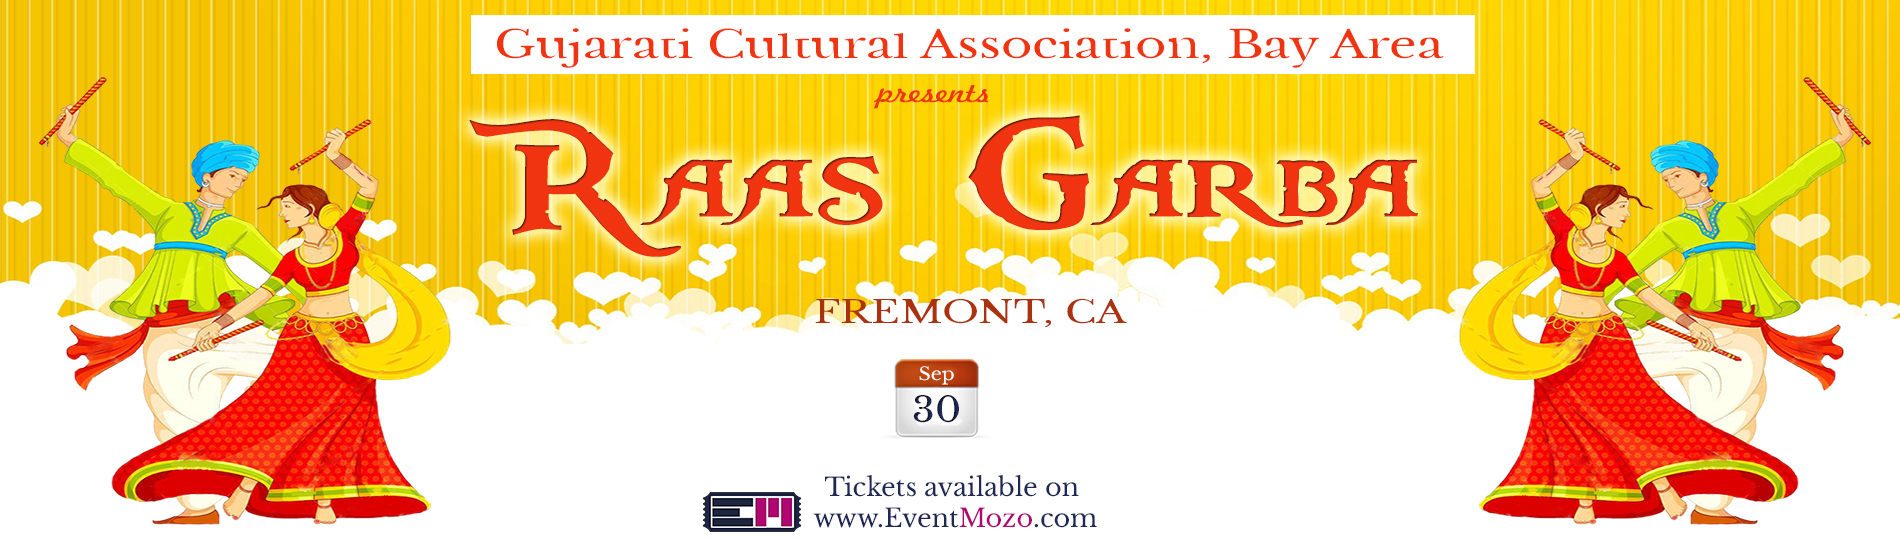 EventMozo GCA Bay Area Raas Garba 2016